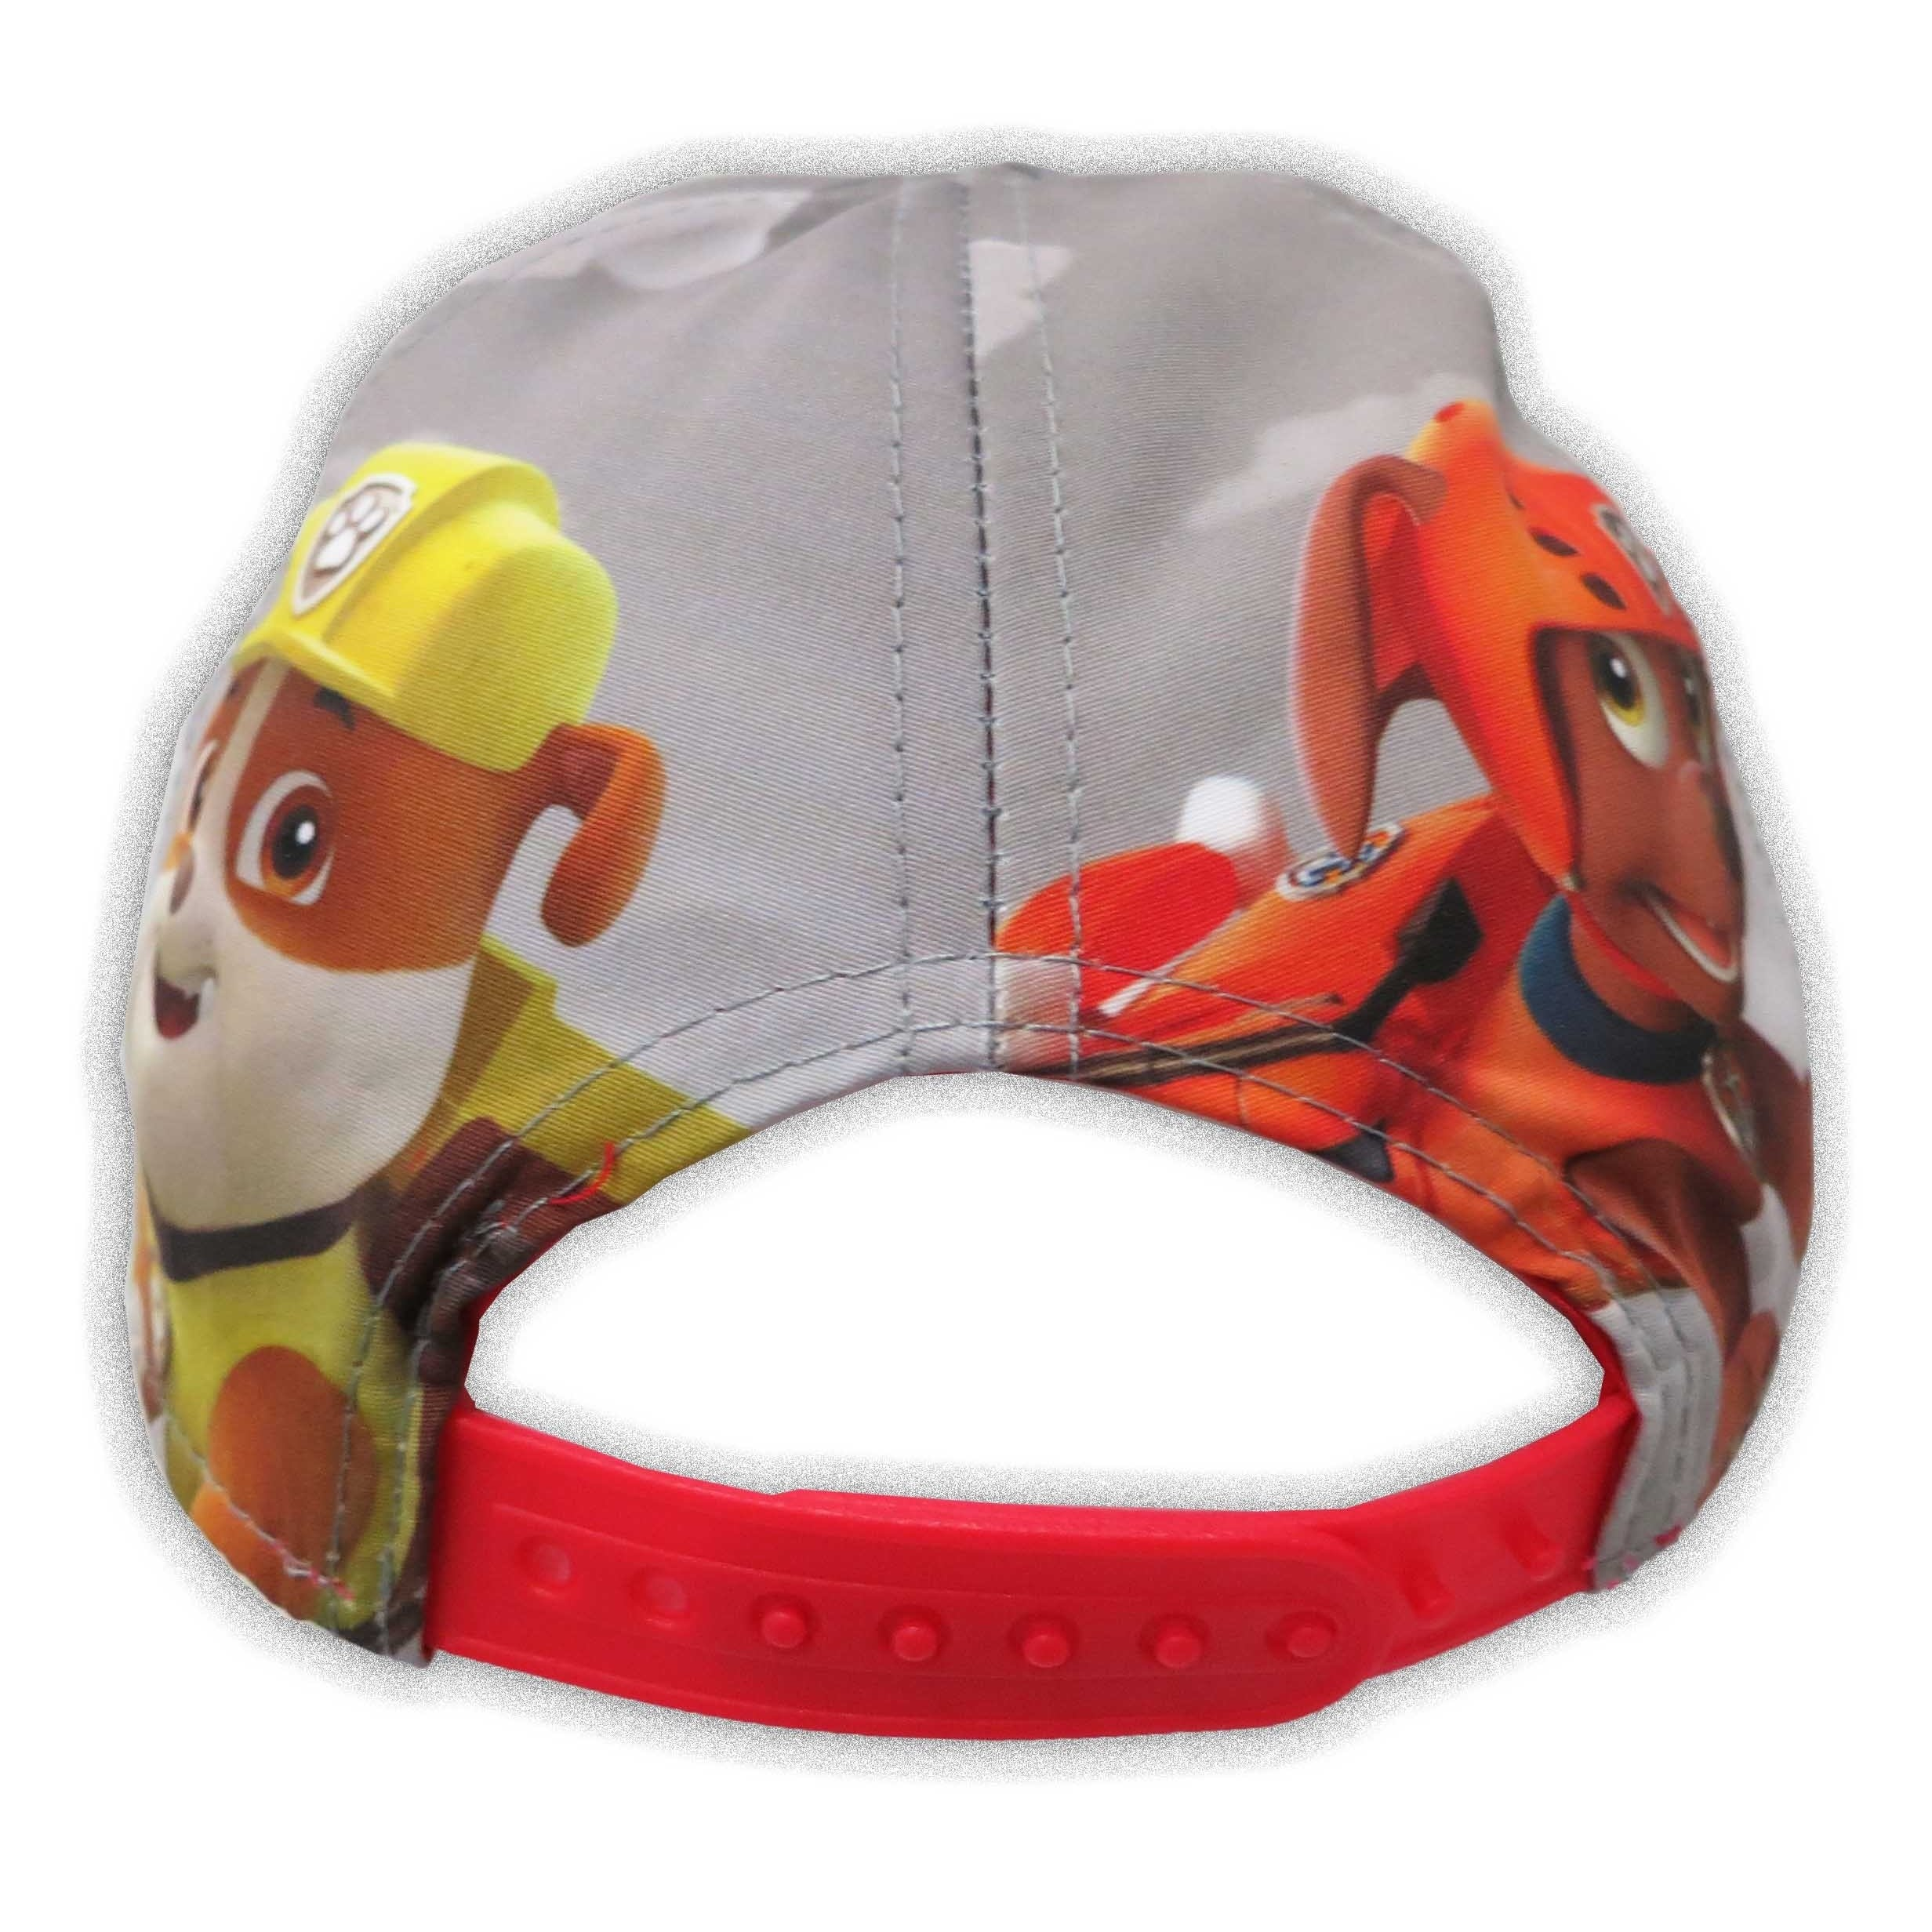 promo code 9b060 47a71 Shop Nickelodeon Toddler Boys Paw Patrol Grey Cotton Baseball Cap - Free  Shipping On Orders Over  45 - Overstock - 13689613